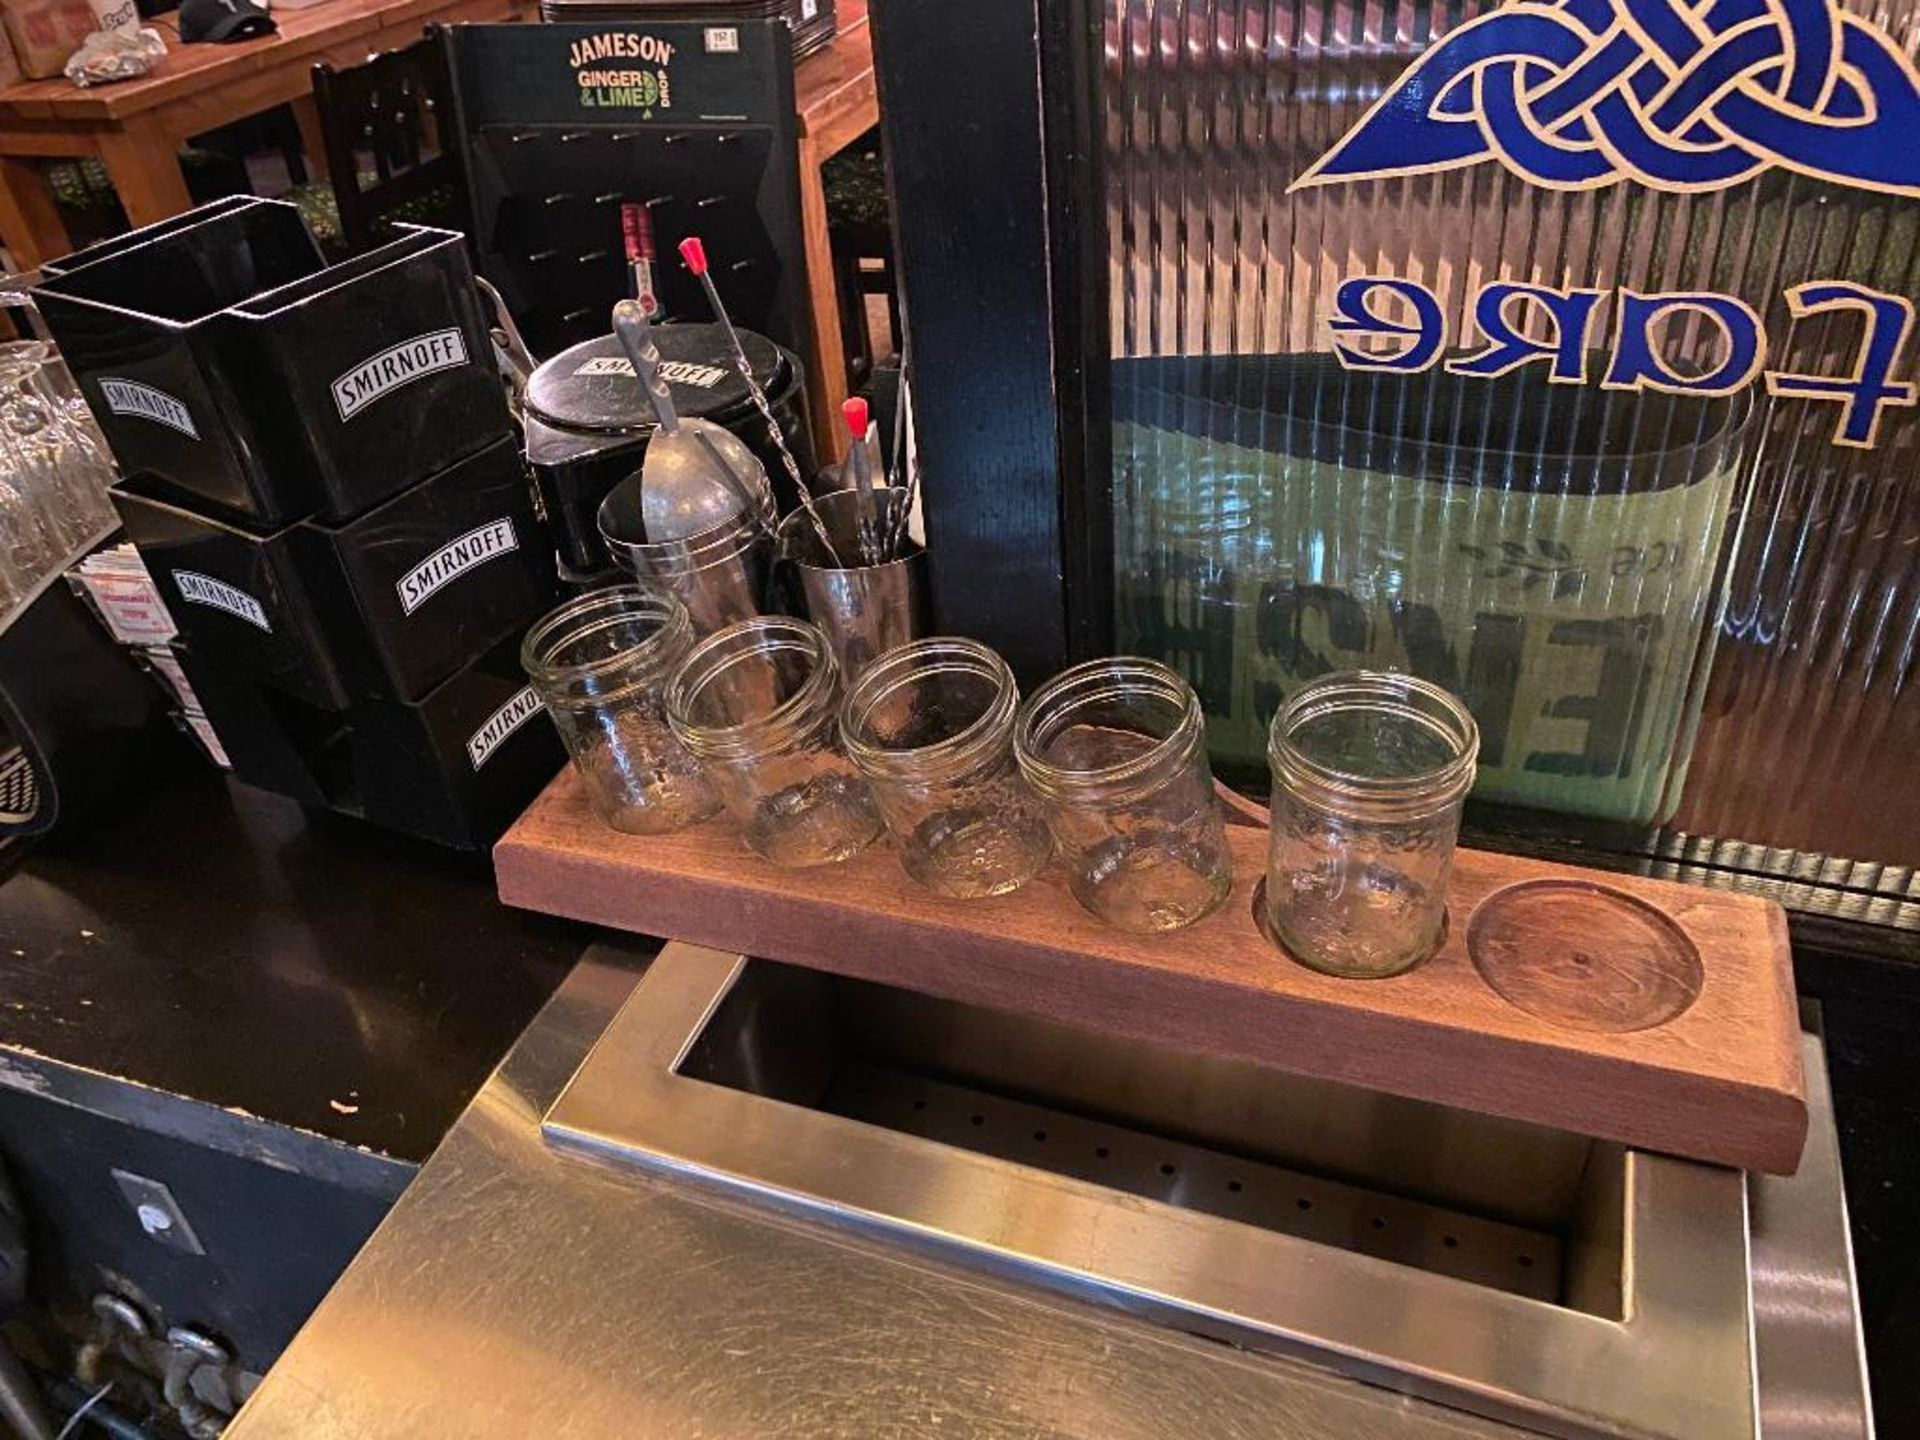 LOT OF ASSORTED BAR ITEMS INCLUDING: SMIRNOFF BAR CADDY, GLASS RIMMER & MORE - Image 3 of 3